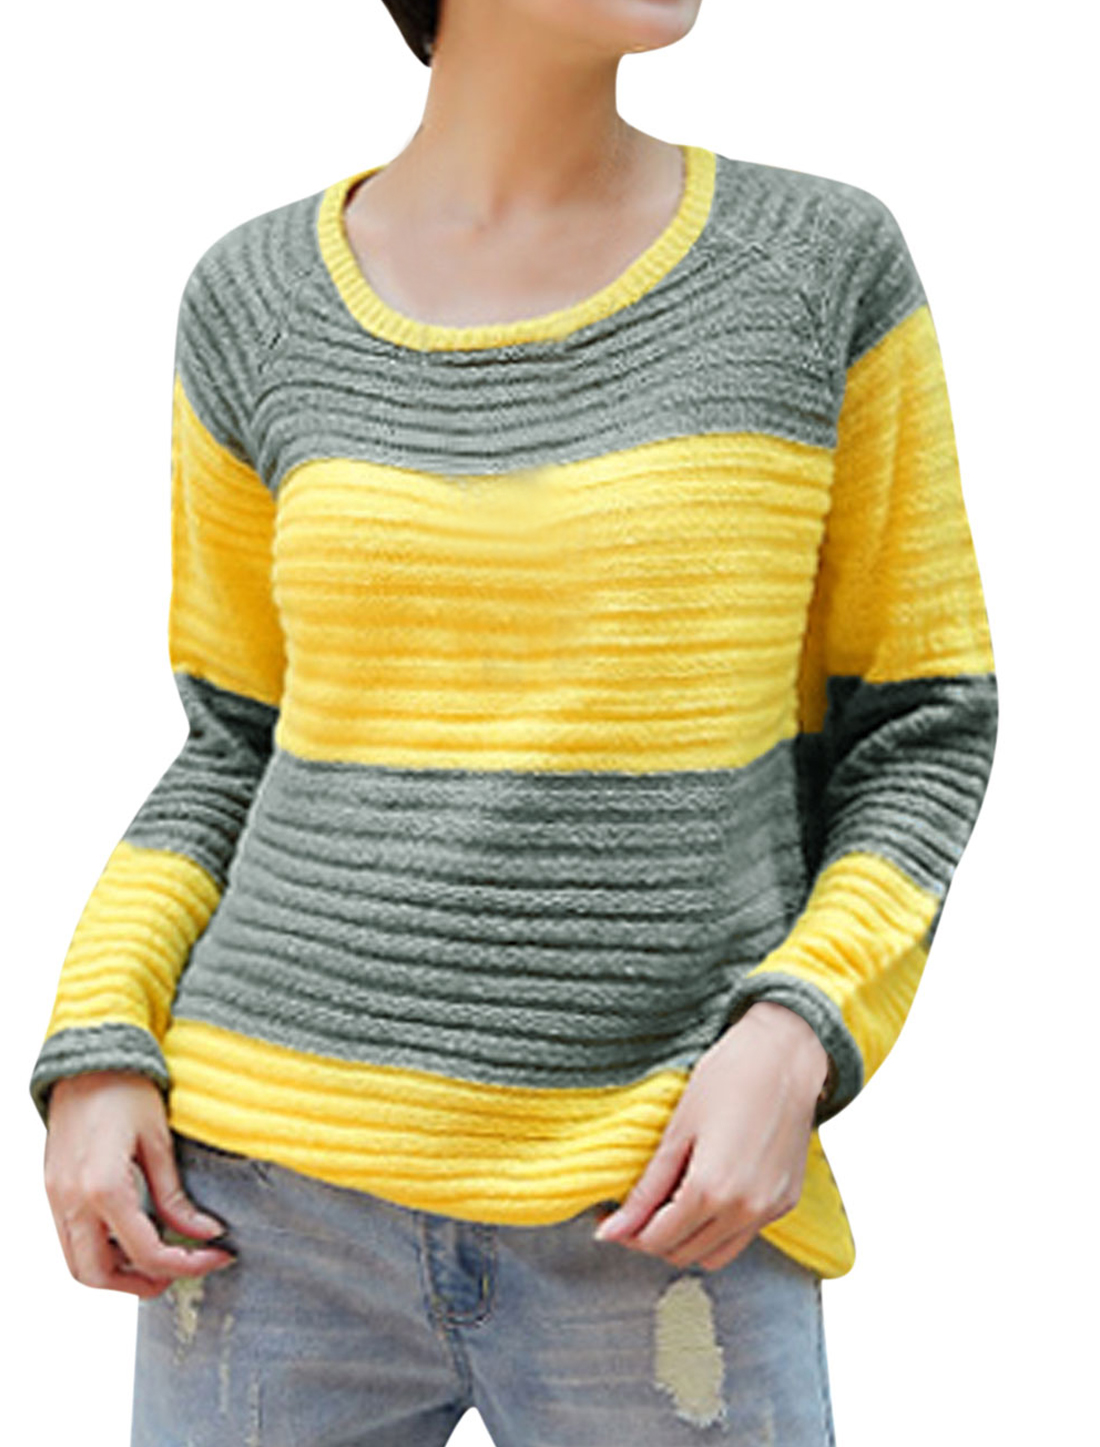 Lady Pullover Long Raglan Sleeve Stripes Pattern Sweater Yellow Gray M